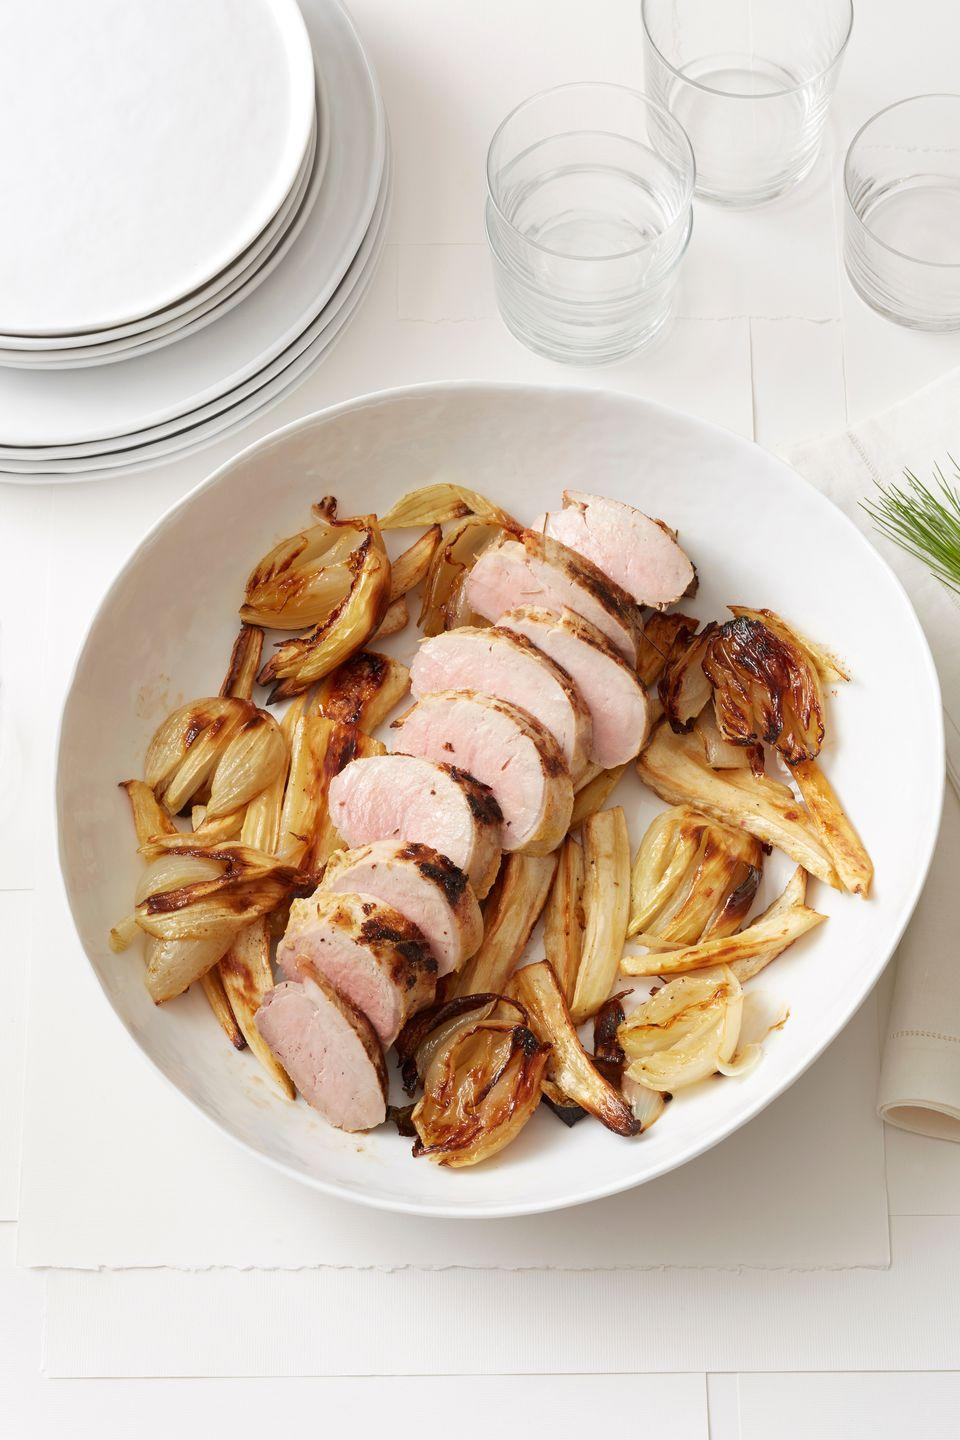 """<p>When using vibrant spices such as cloves, bay leaves, and peppercorns in dishes, keep in mind that a little goes a long way — as in this delightful pork tenderloin.</p><p><strong><a href=""""https://www.countryliving.com/food-drinks/recipes/a1052/spiced-pork-tenderloin-3159/"""" rel=""""nofollow noopener"""" target=""""_blank"""" data-ylk=""""slk:Get the recipe"""" class=""""link rapid-noclick-resp"""">Get the recipe</a>.</strong></p>"""